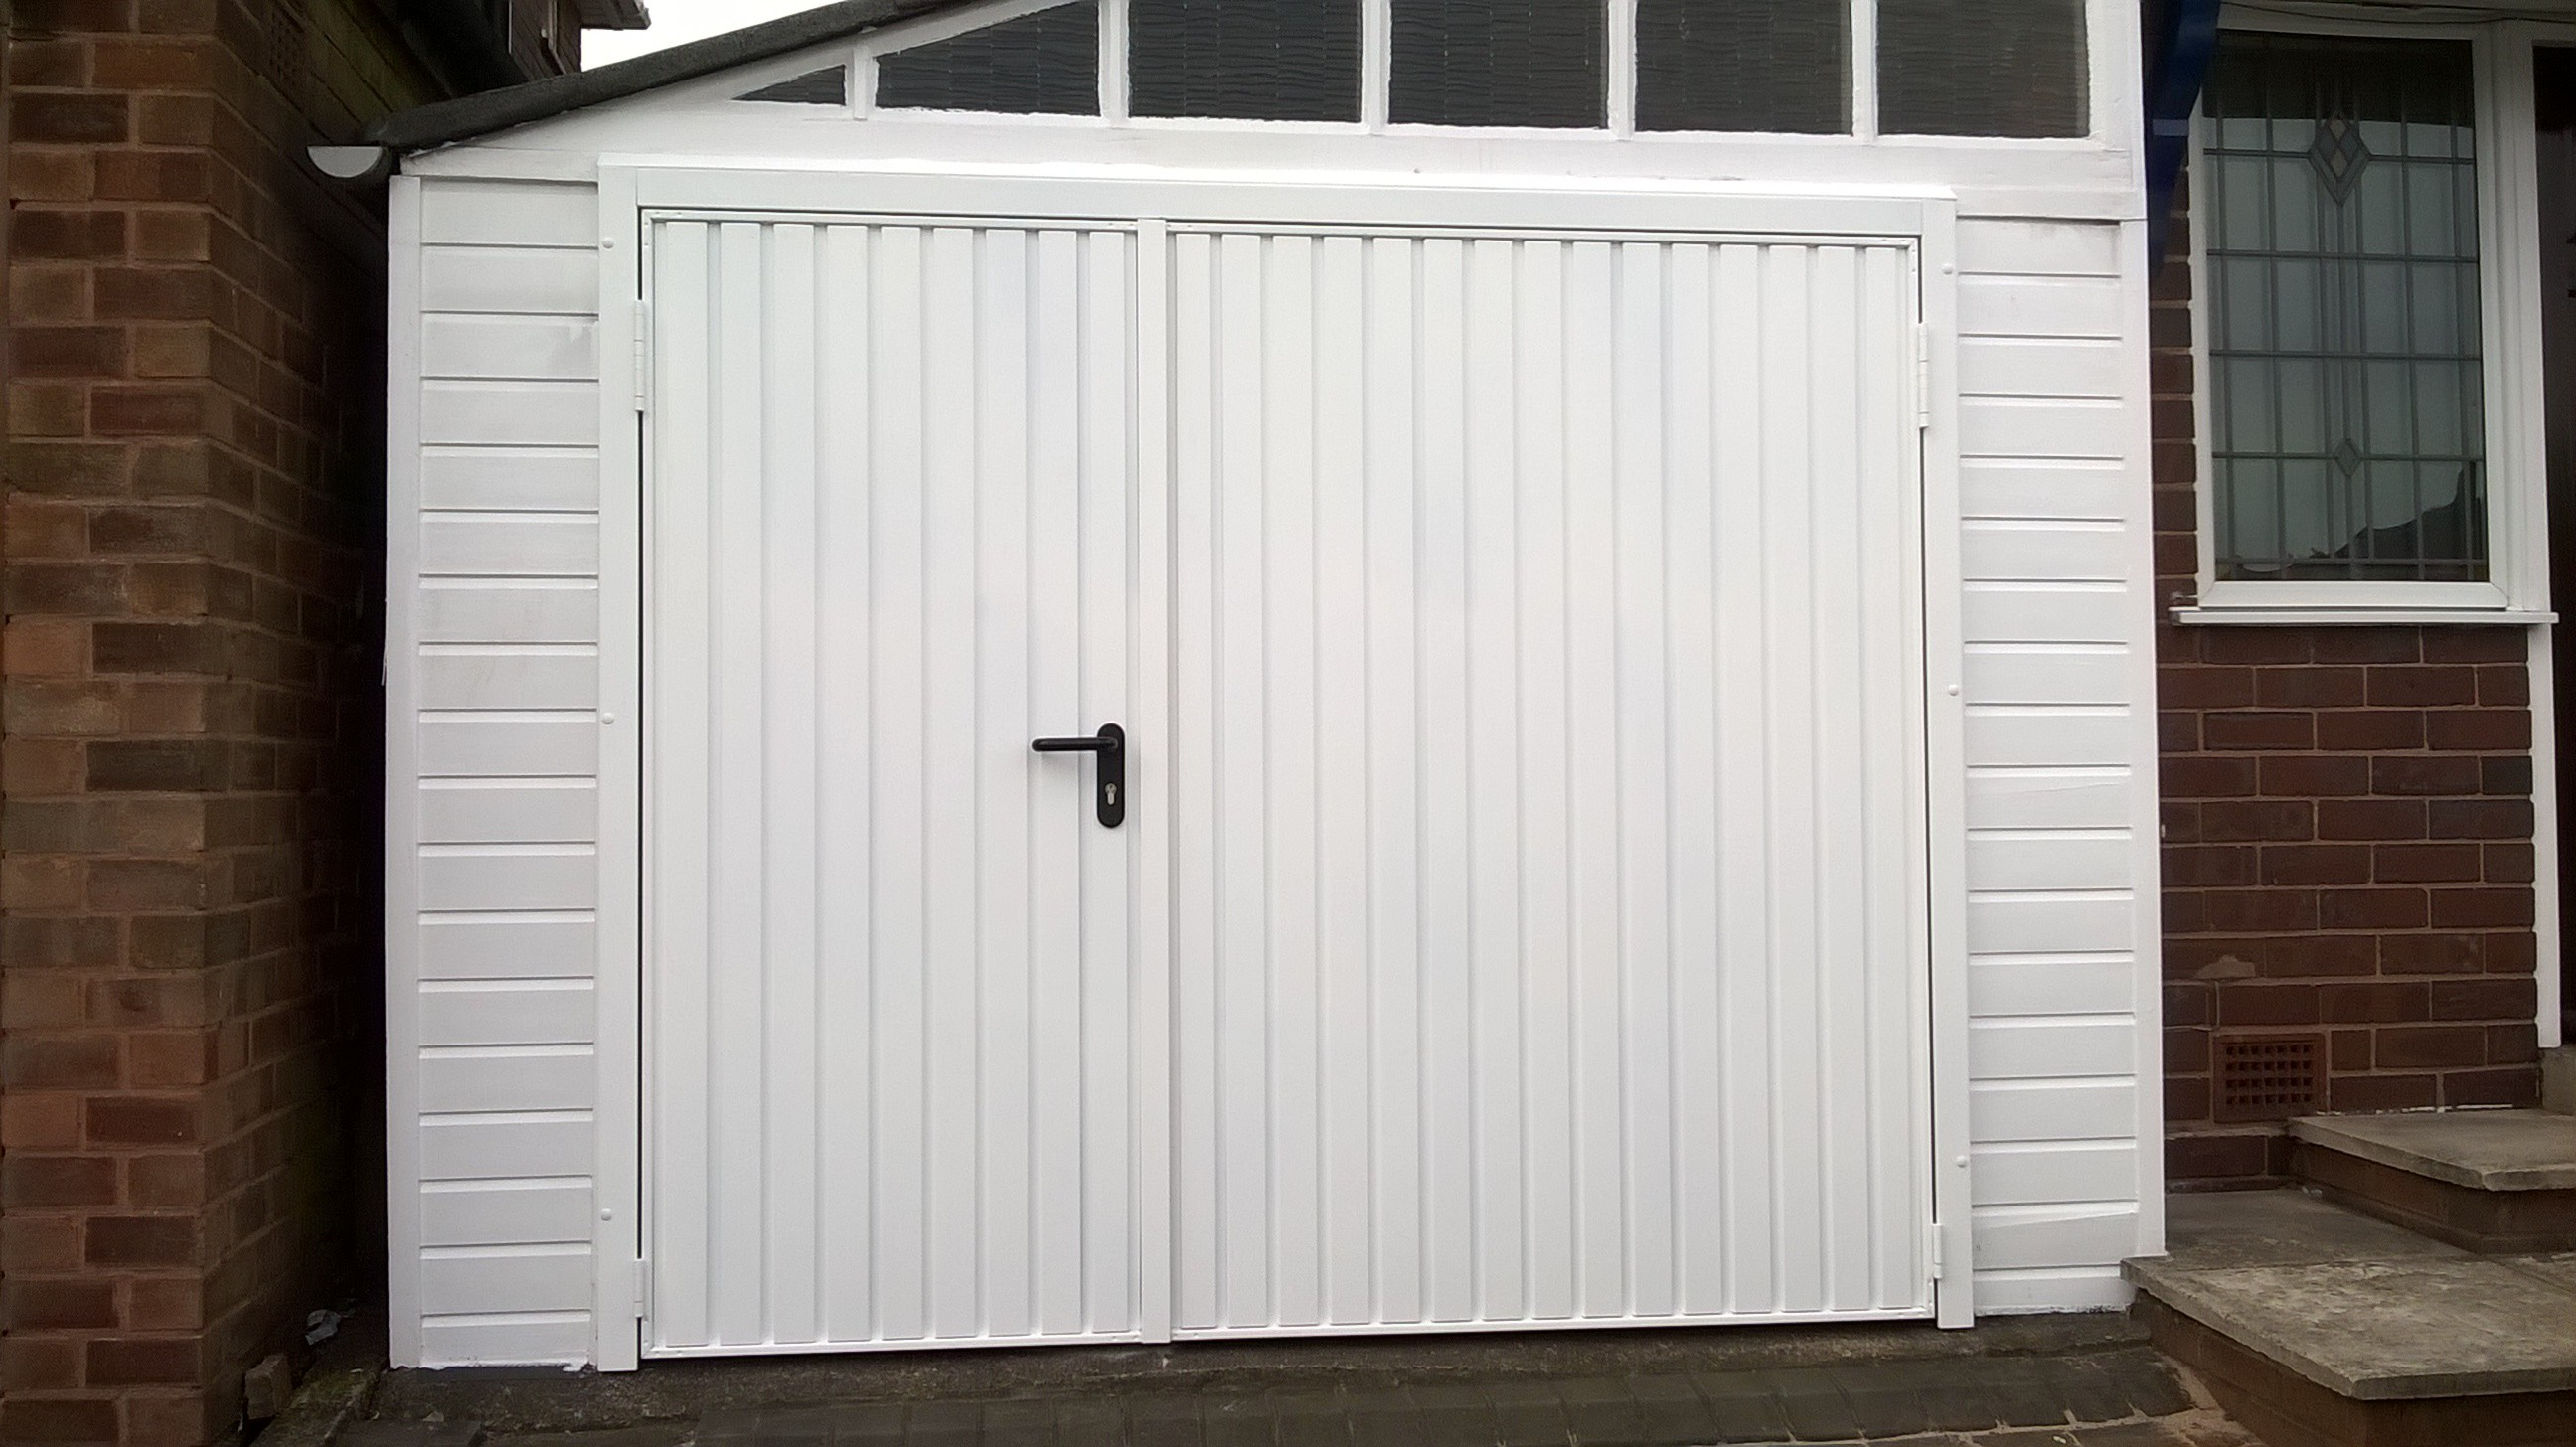 openers installation door residential groover doors aiken the garage before